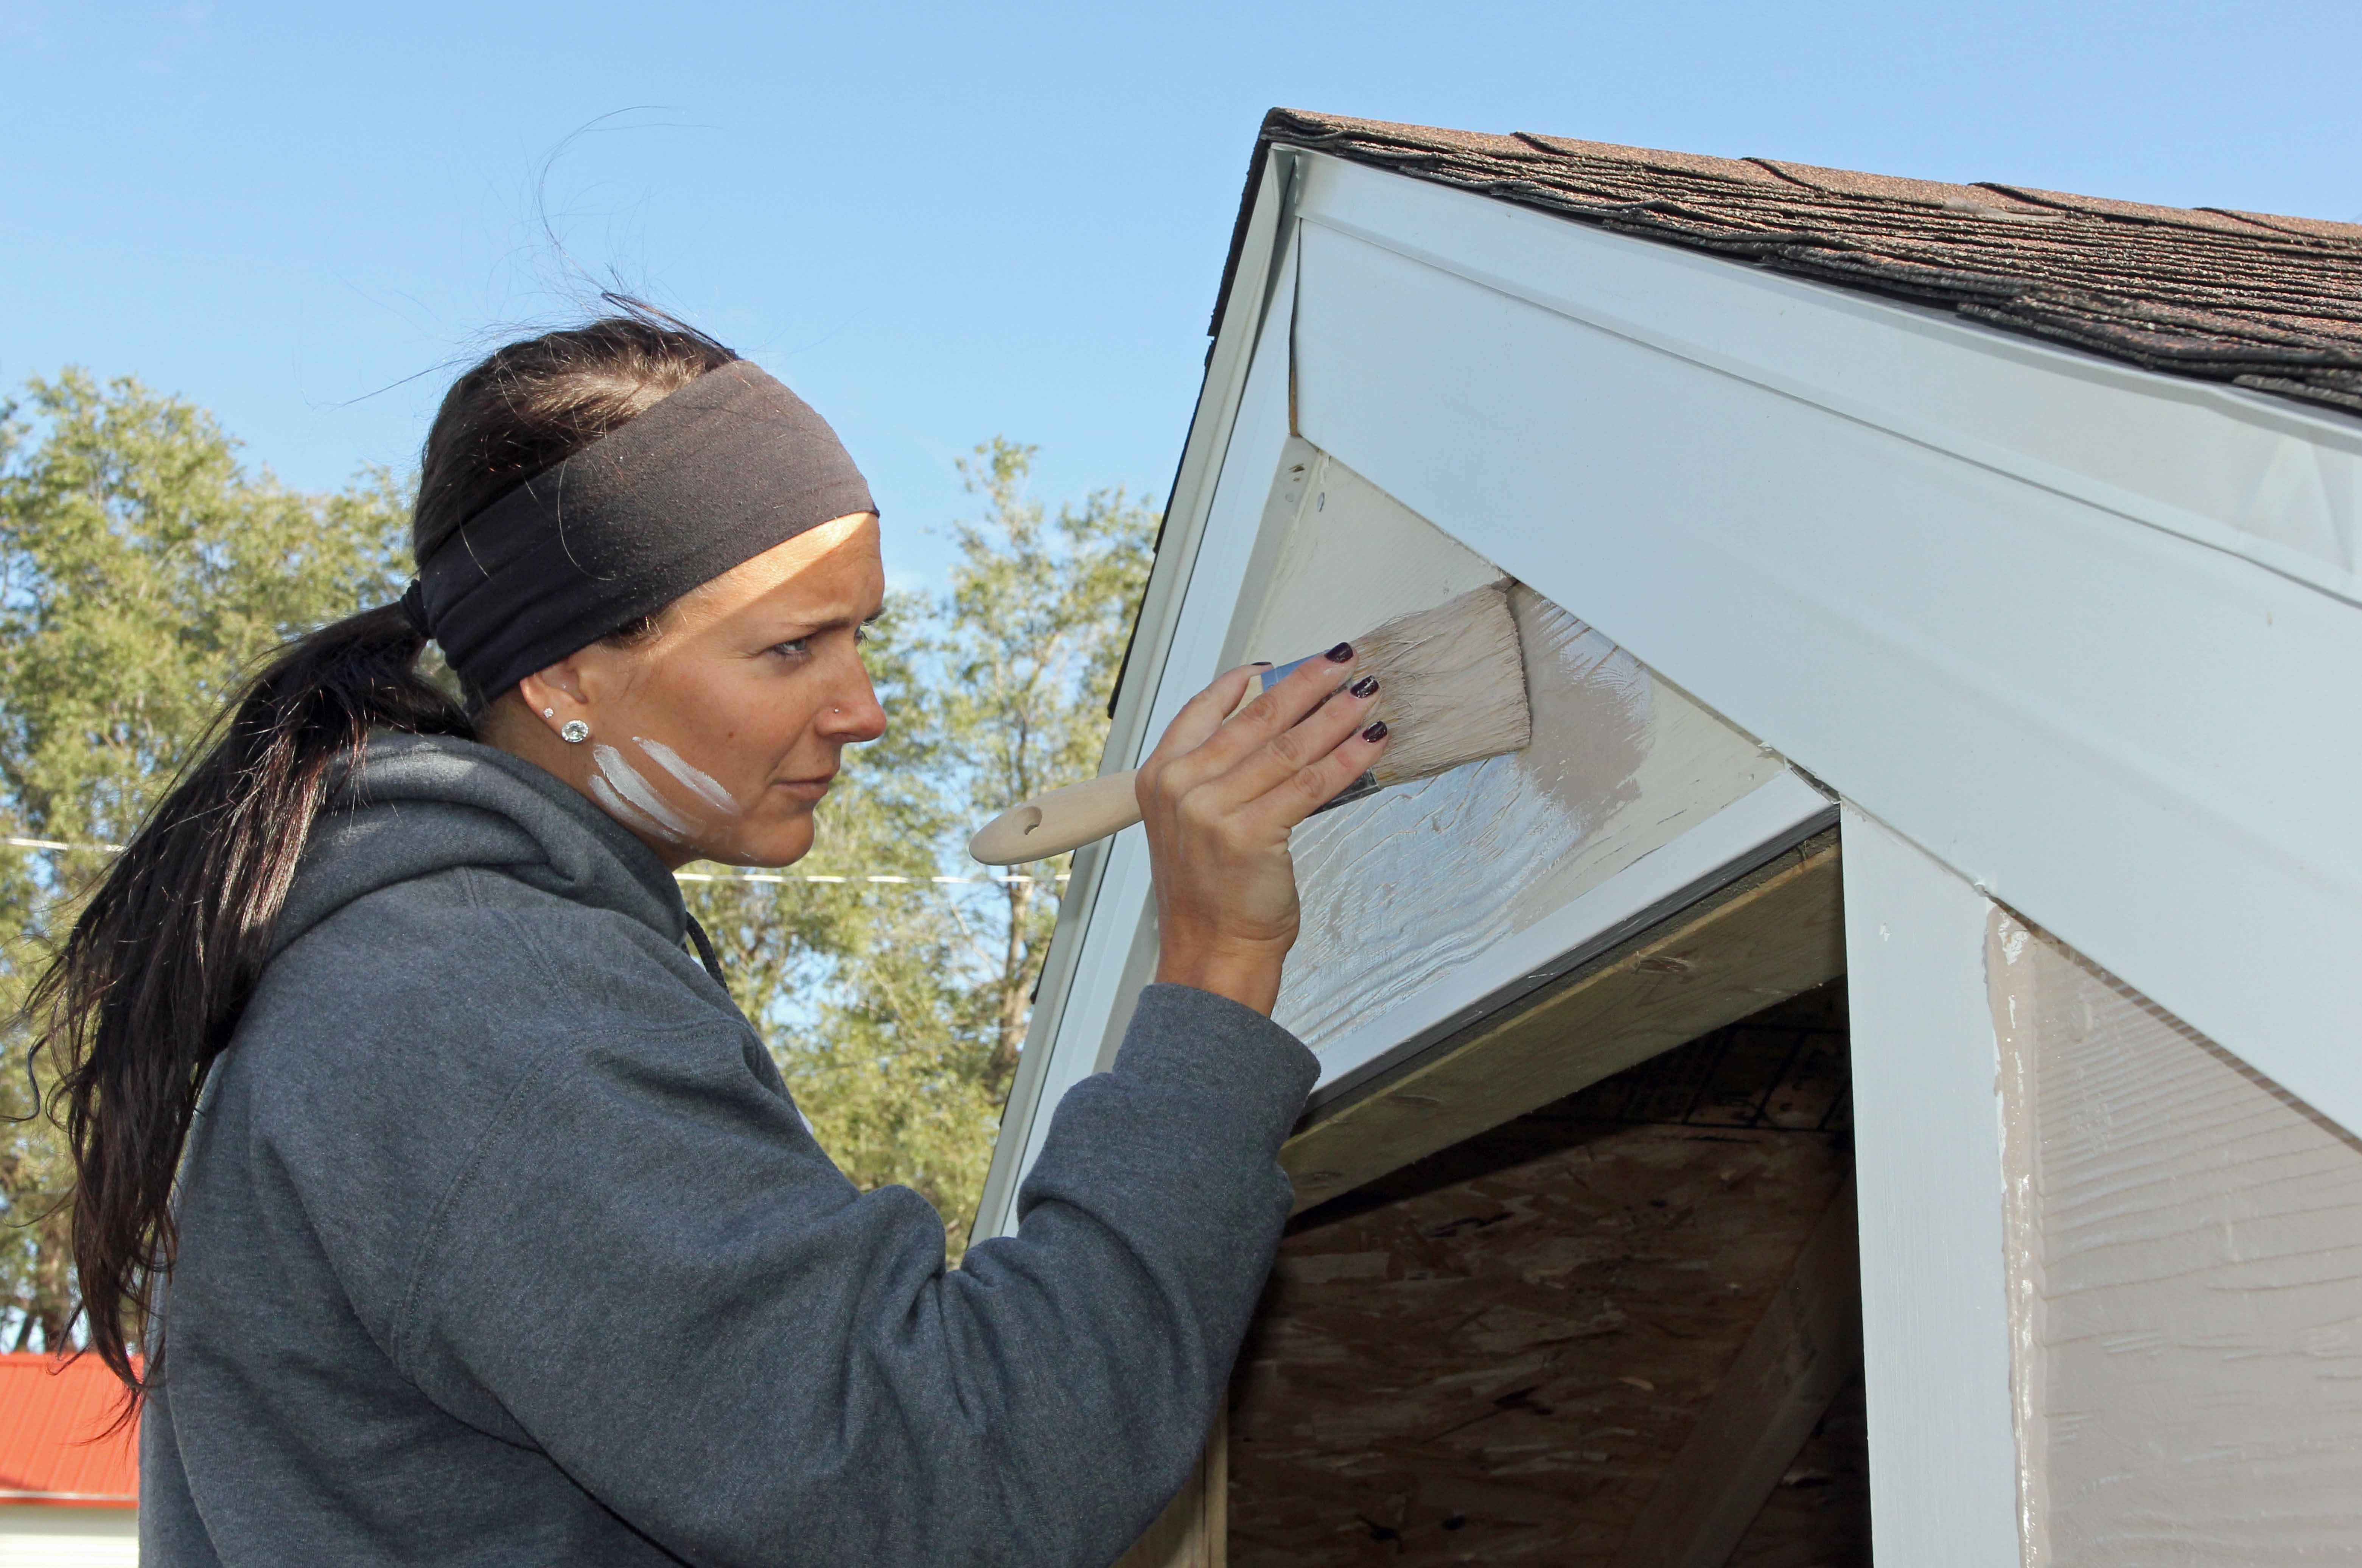 UNK softball player Kenzie Helmink paints a storage shed as part of the team's volunteer efforts with Habitat for Humanity. (Photo by Todd Gottula/UNK Communications)